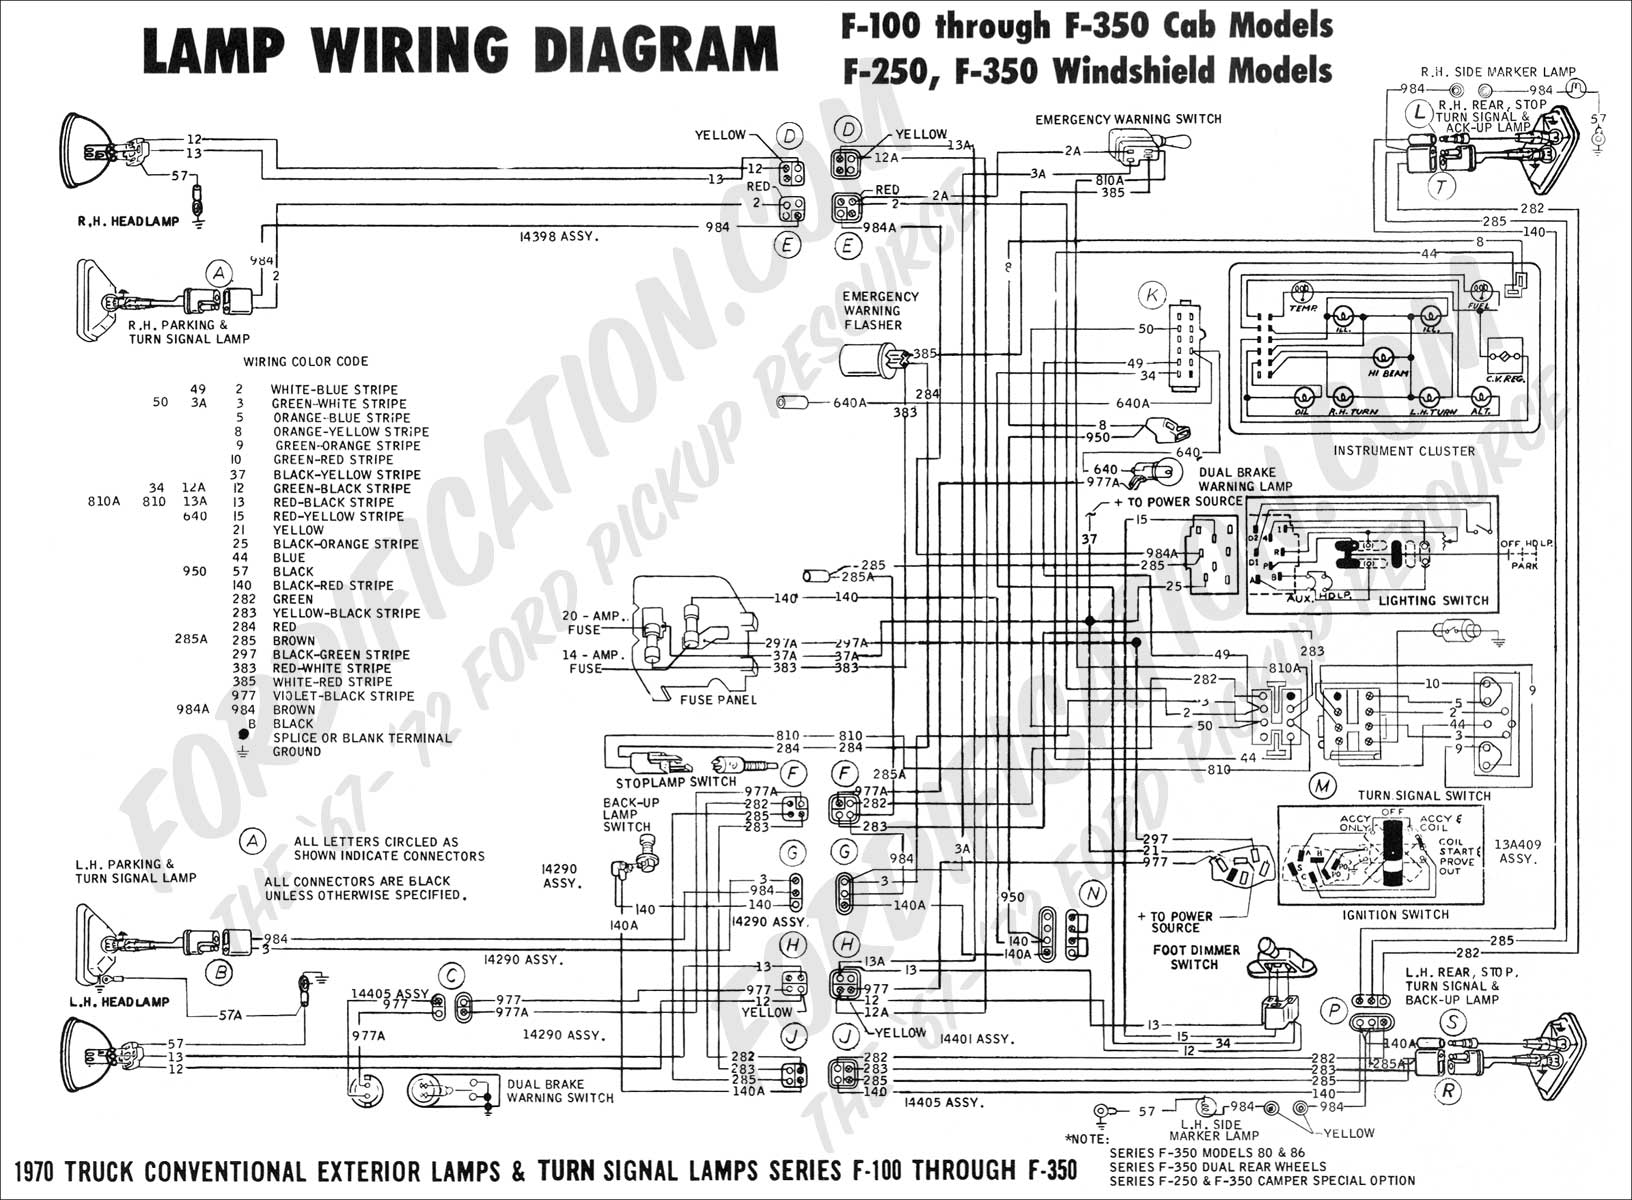 wiring diagram_70ext lights01 2008 ford mustang wiring diagram good guide of wiring diagram \u2022